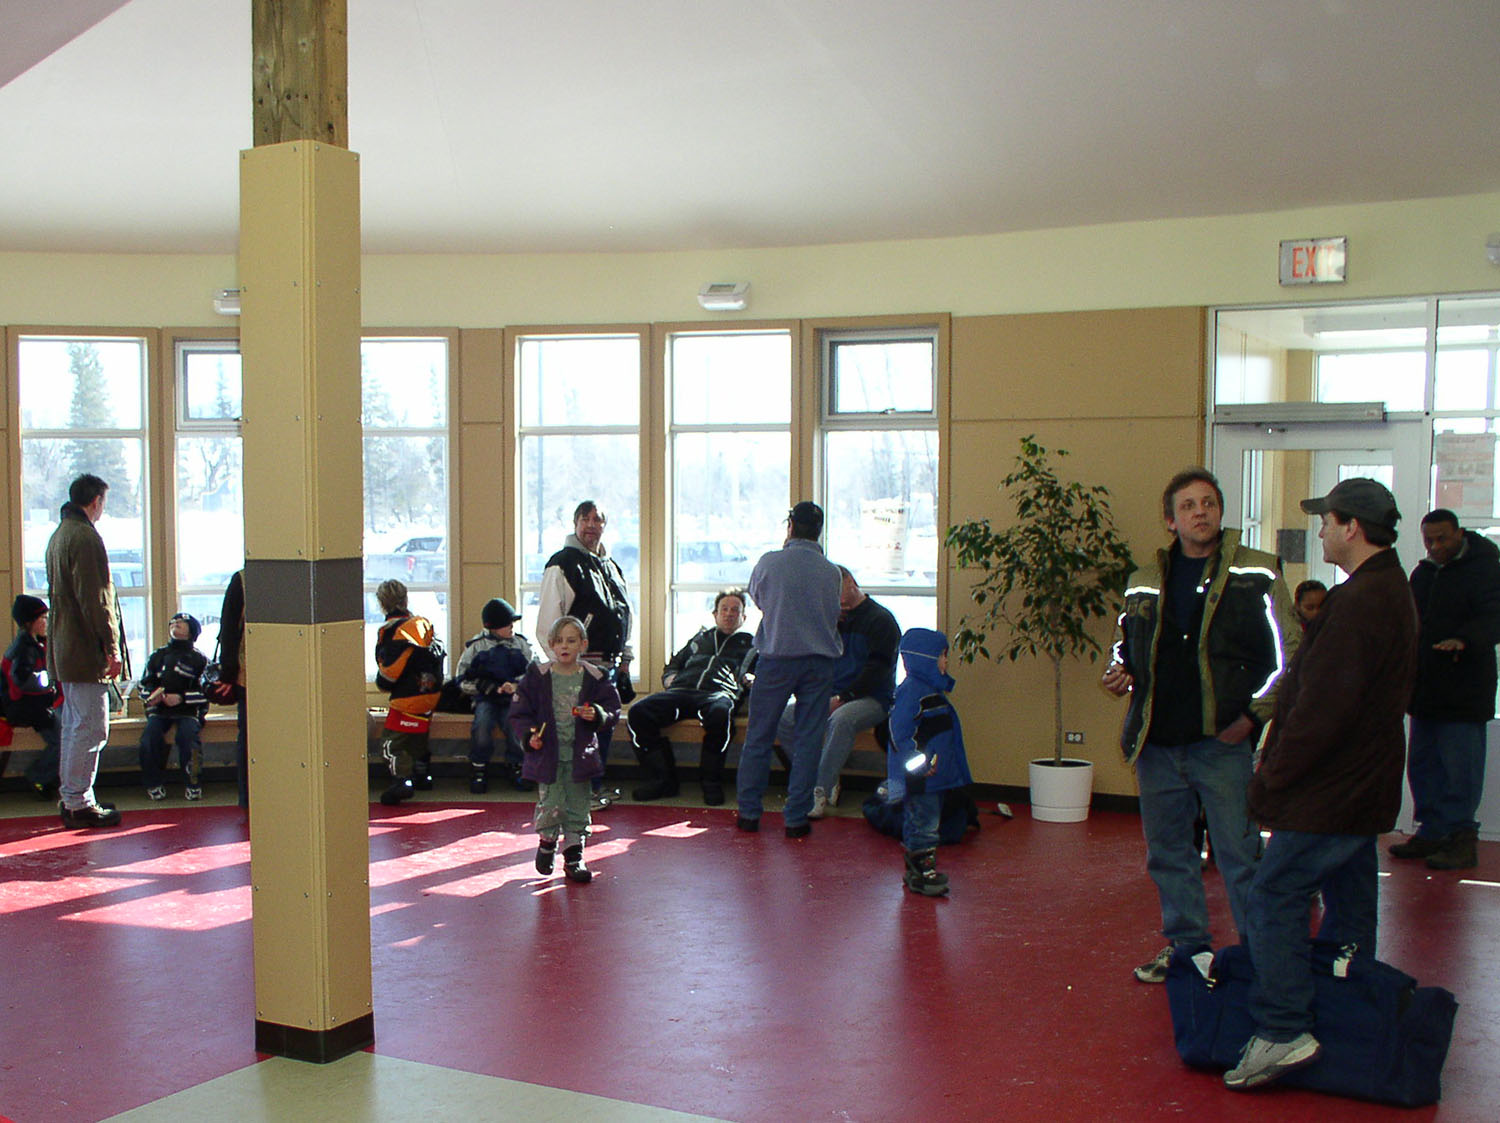 Red River Community Centre, interior photo of entrance